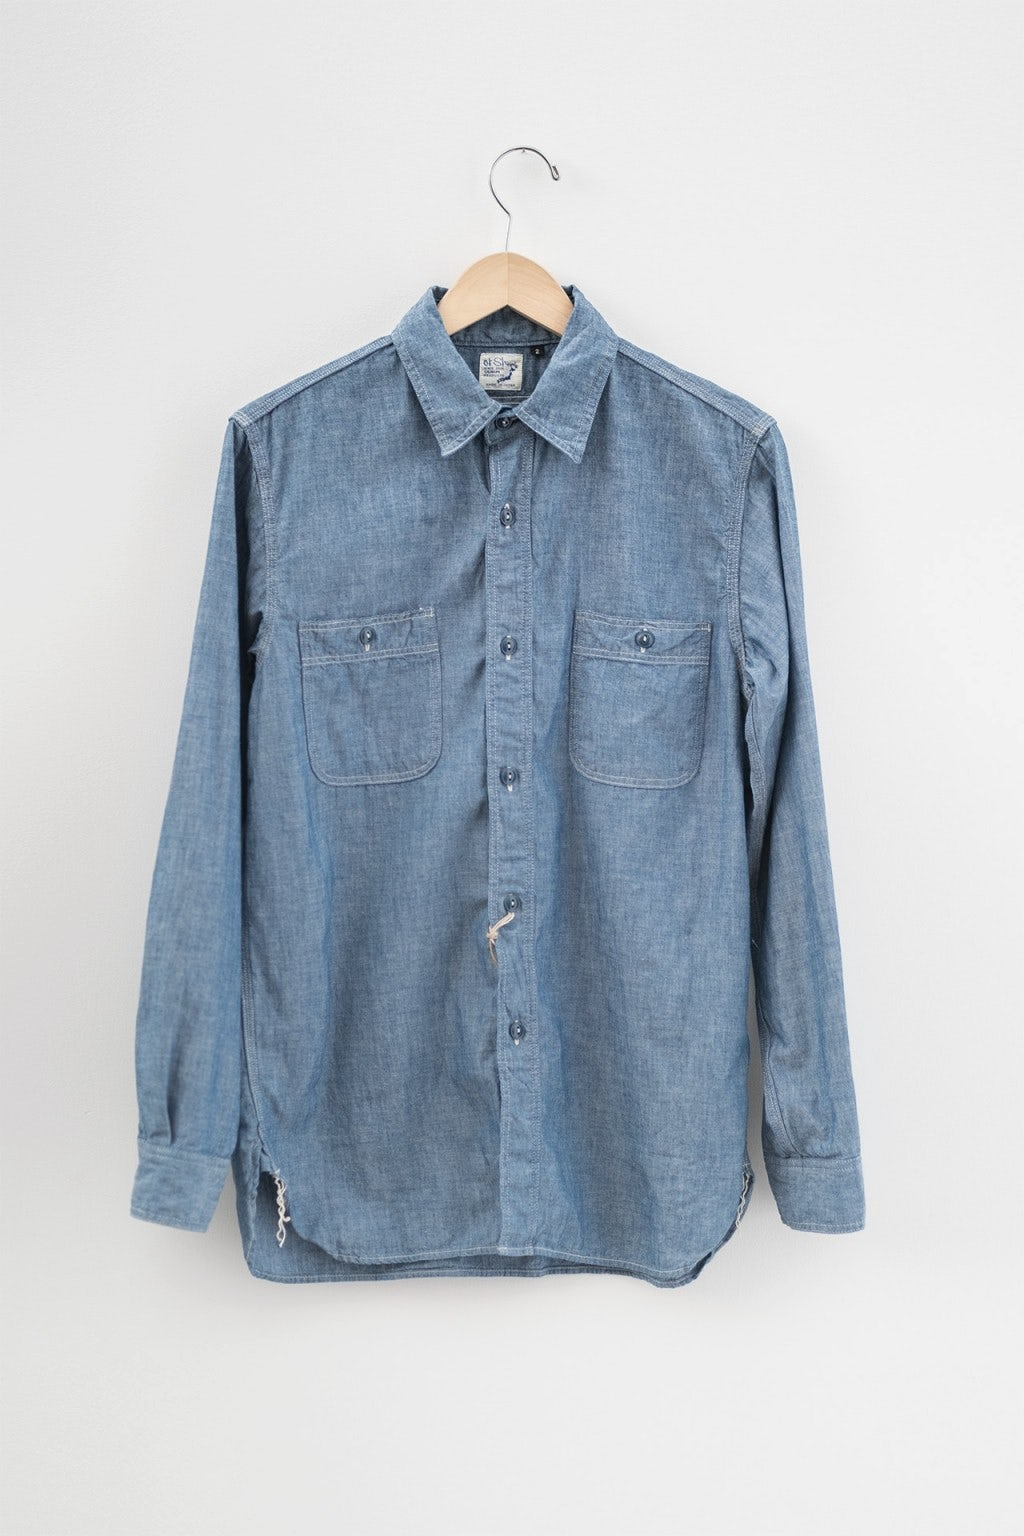 Orslow Work Shirt 84 Chambray